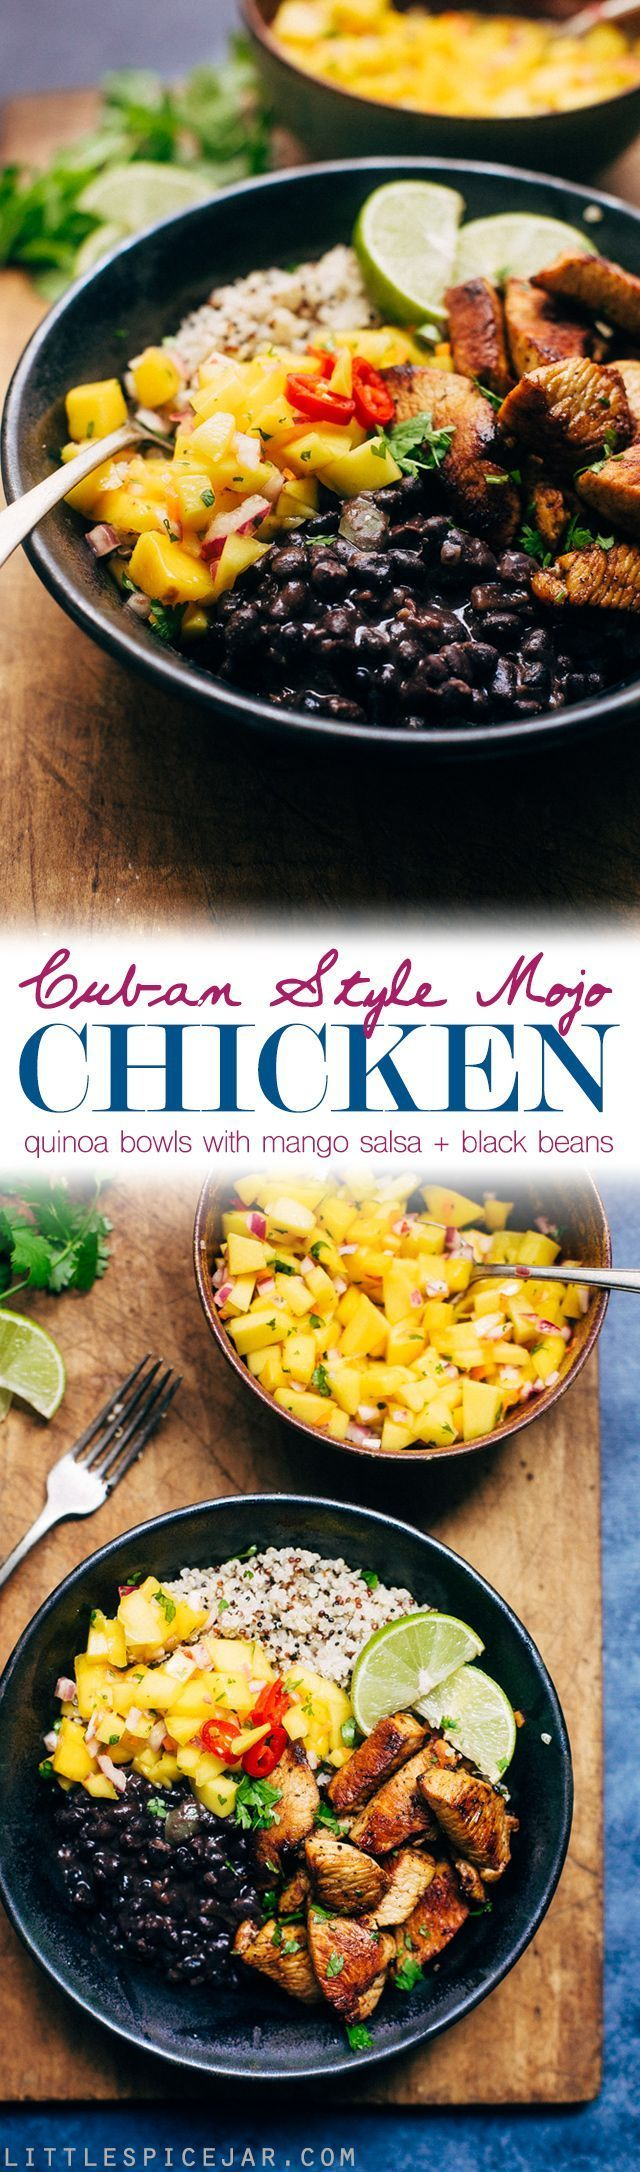 Cuban Mojo Chicken Quinoa Bowls with Mango Salsa and Black Beans - These bowls are bright and flavorful! The perfect quick meal to prep and enjoy all week long! The flavors just get better with time! #cubanchicken #mojochicken #chickenquinoabowls #quinoa   http://Littlespicejar.com